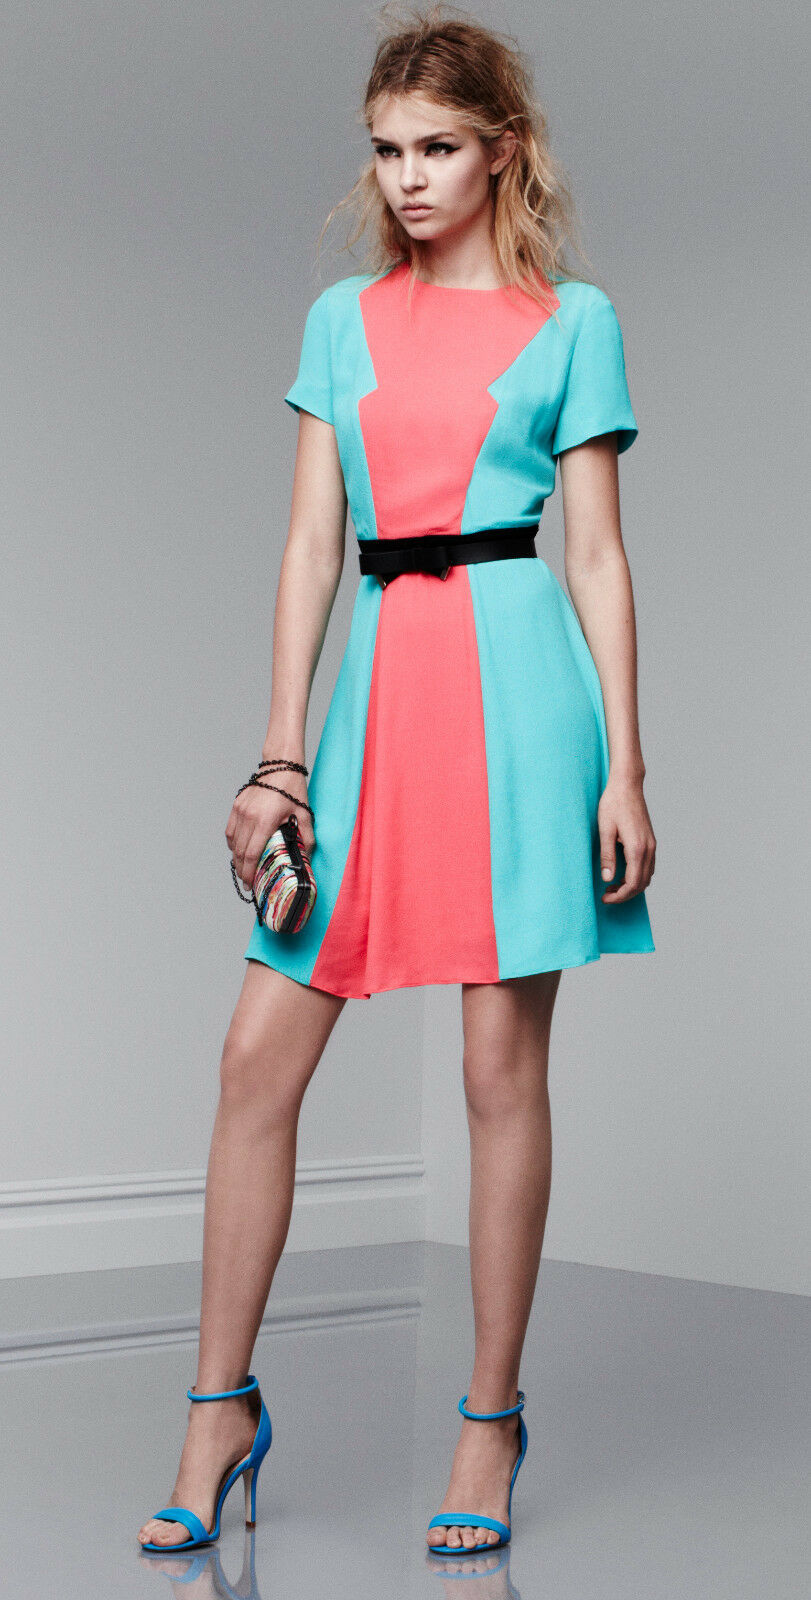 NEW  Prabal Gurung Short Sleeve Dress Calypso Coral Atlantis 4 6 8 10